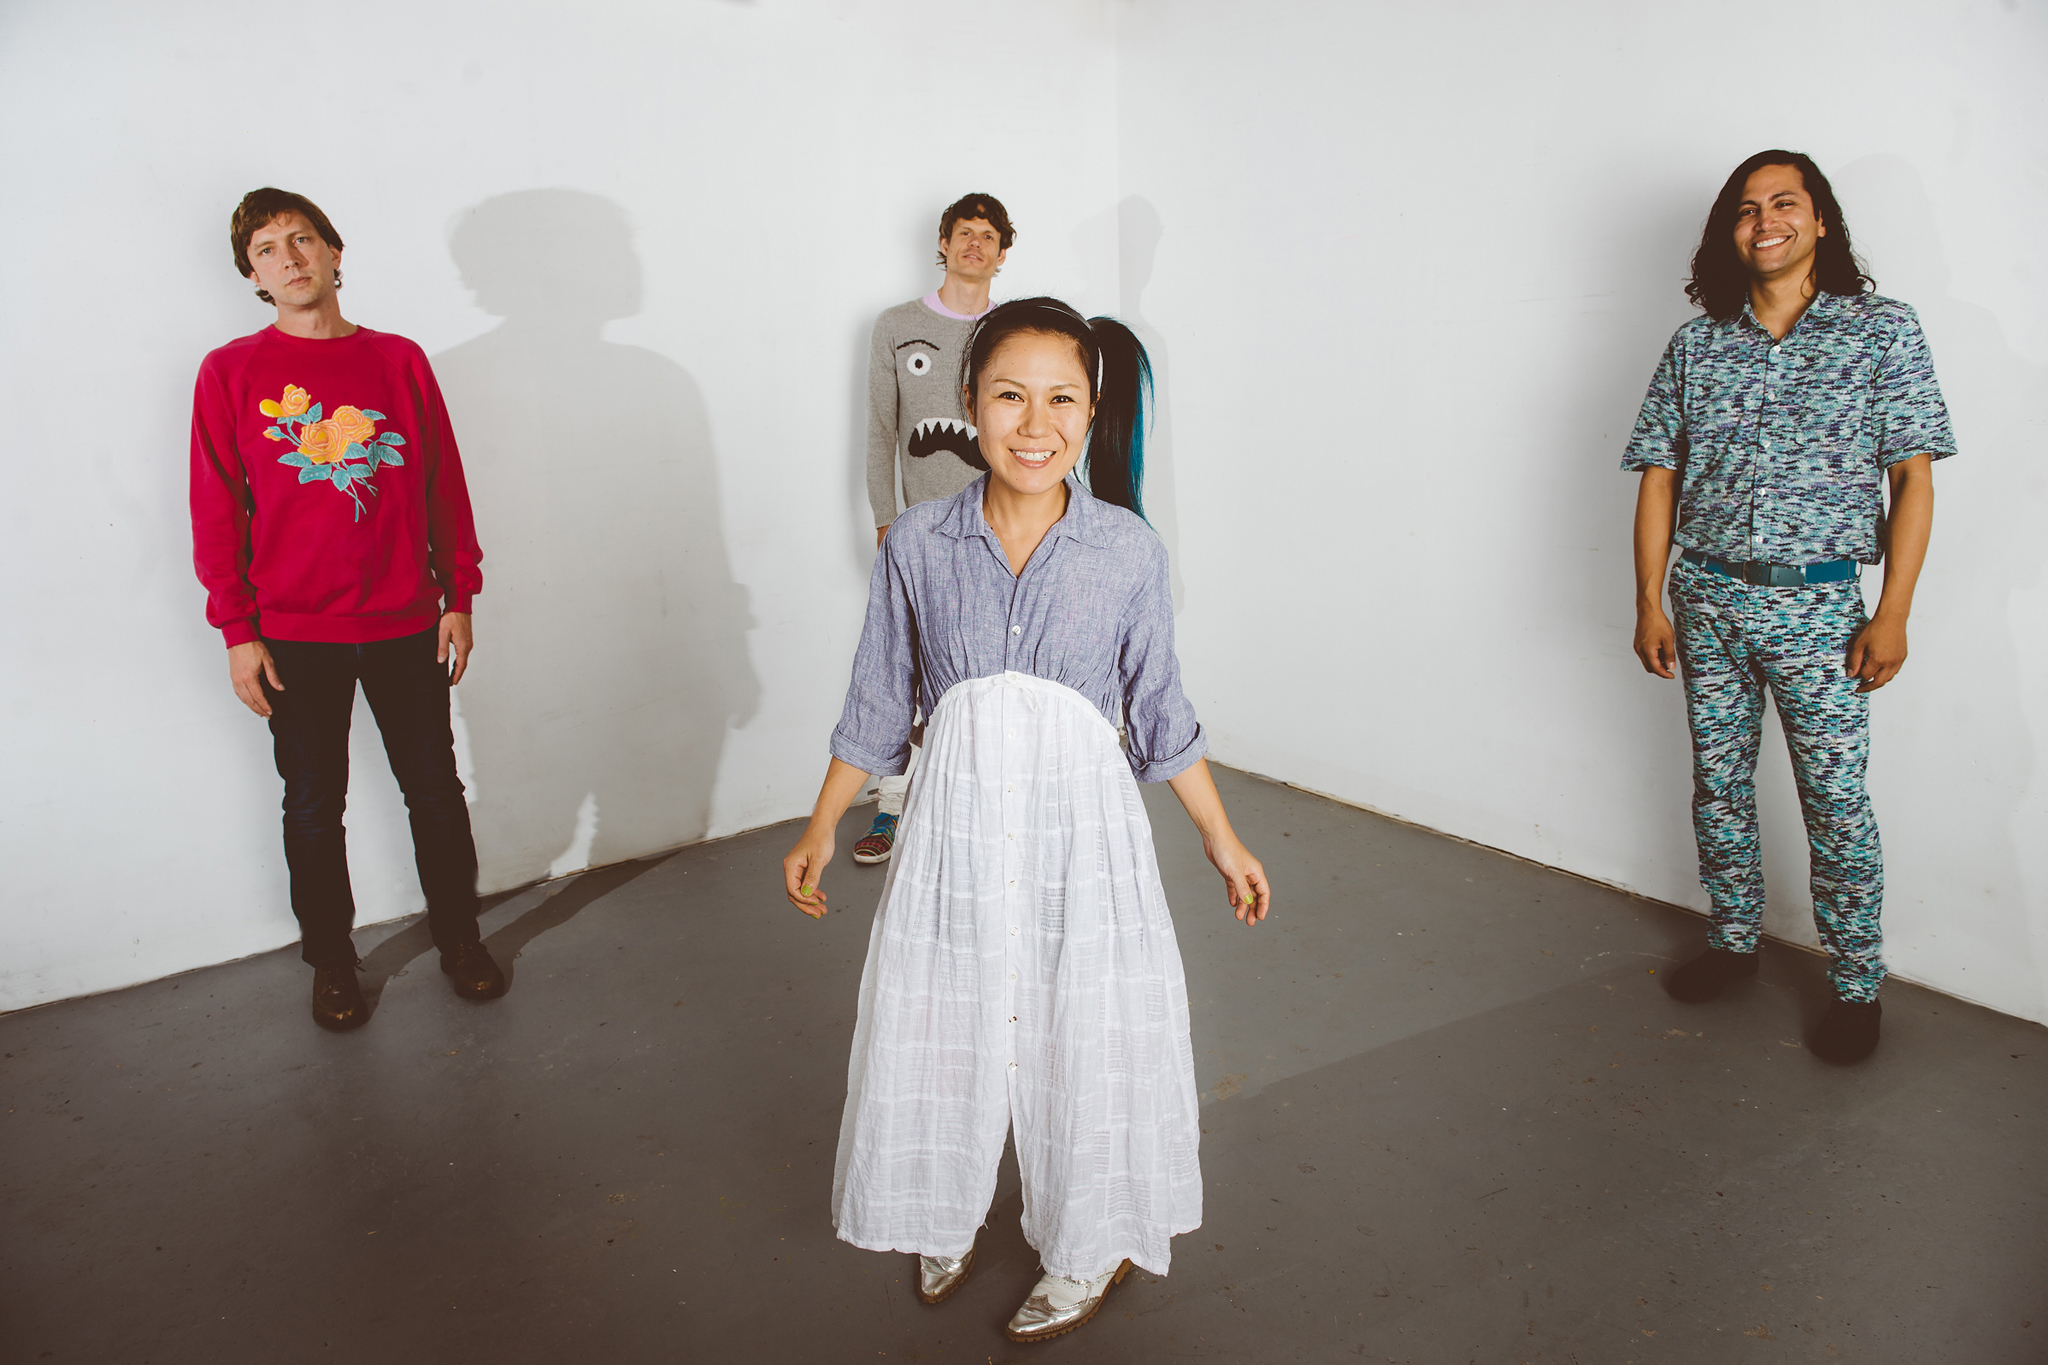 Deerhoof's Greg Saunier interview